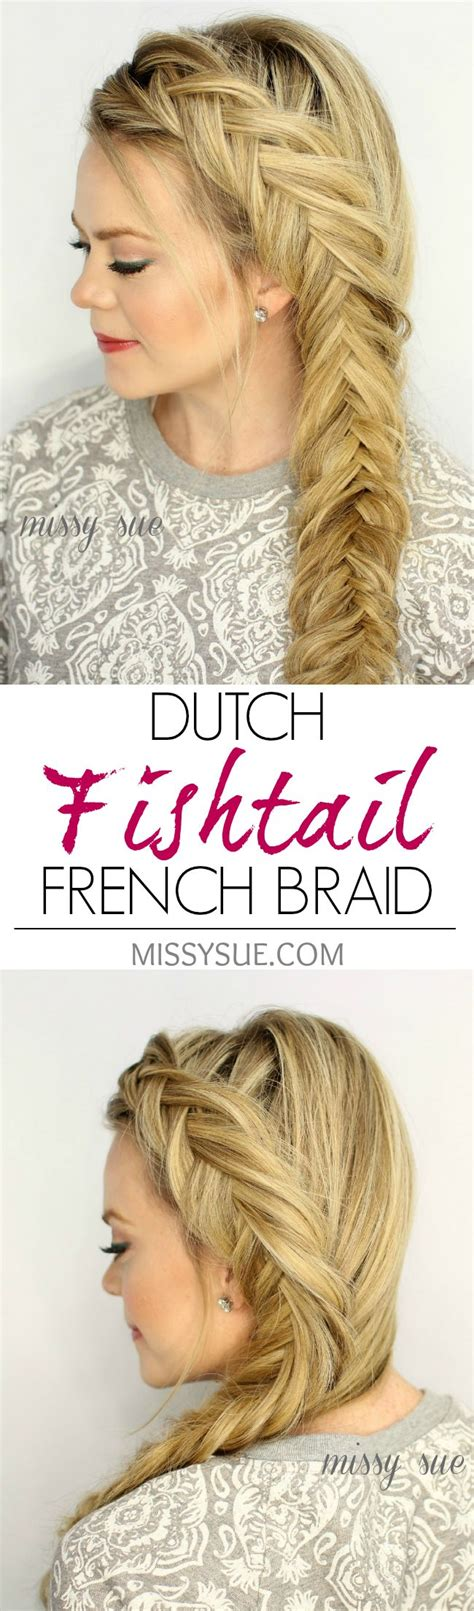 15 fishtail braids you should 15 diy braided hair tutorials for winter pretty designs